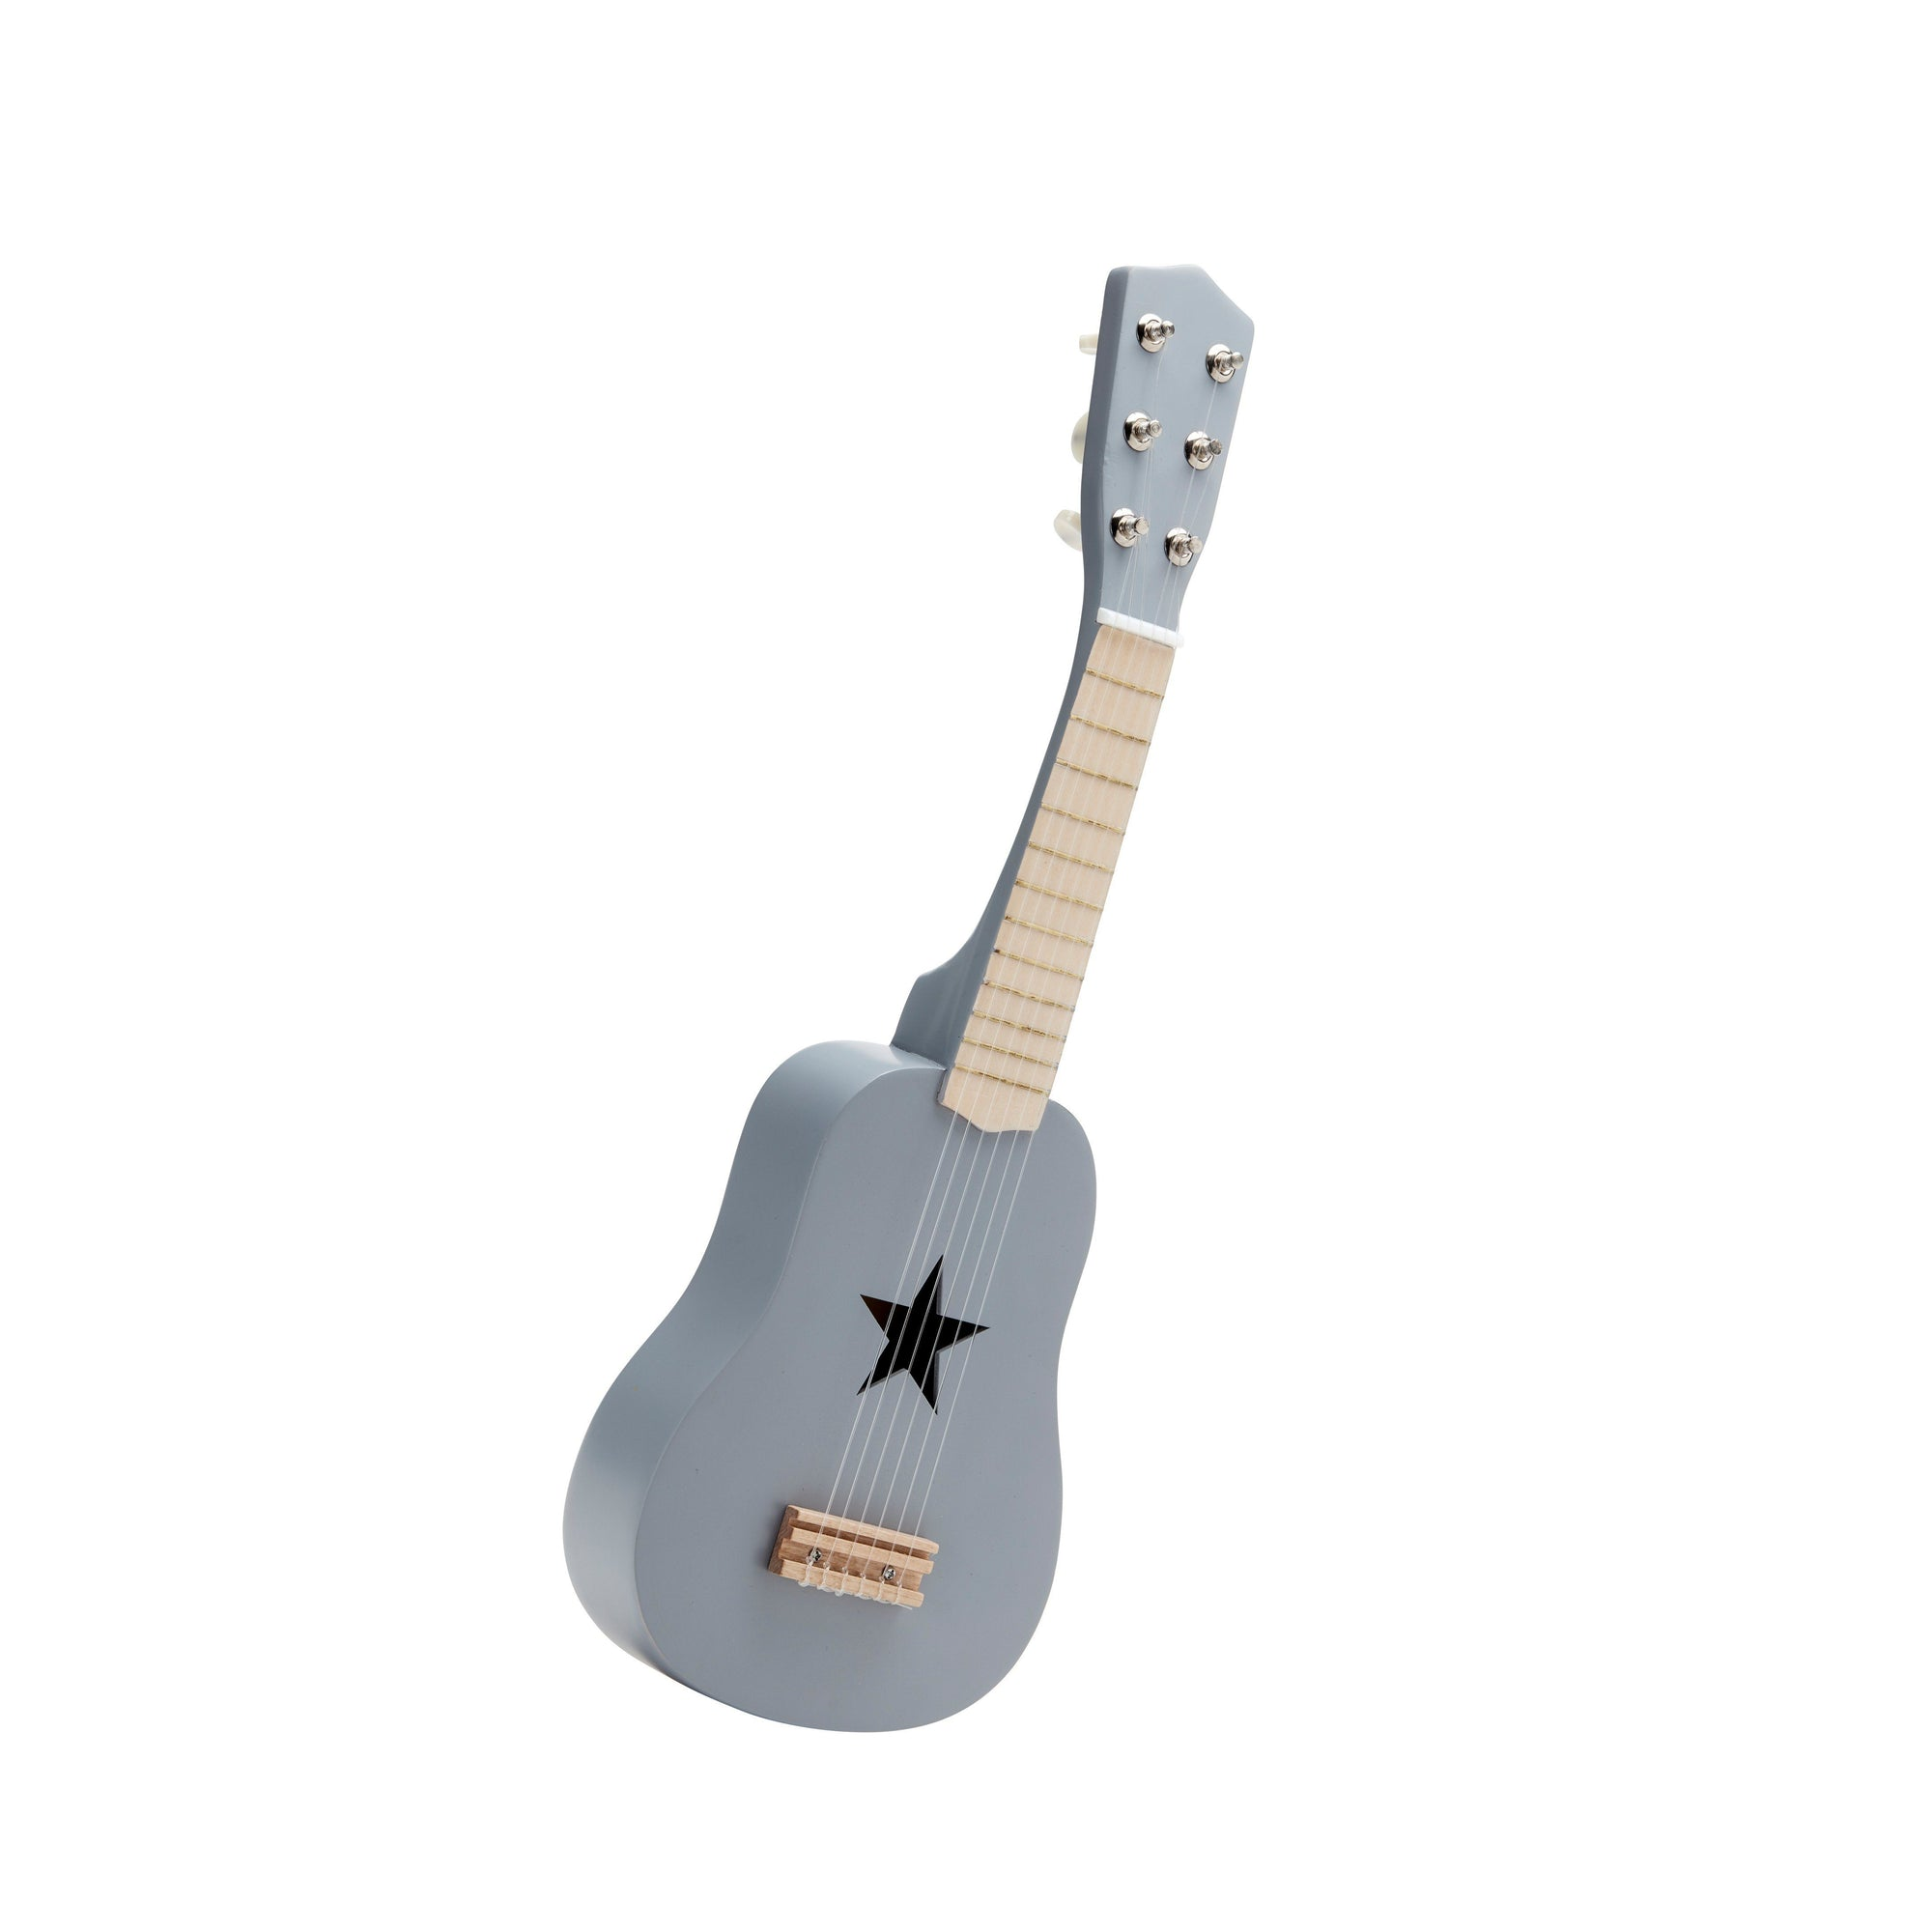 Kids Concept Guitar Grey Wooden Toy